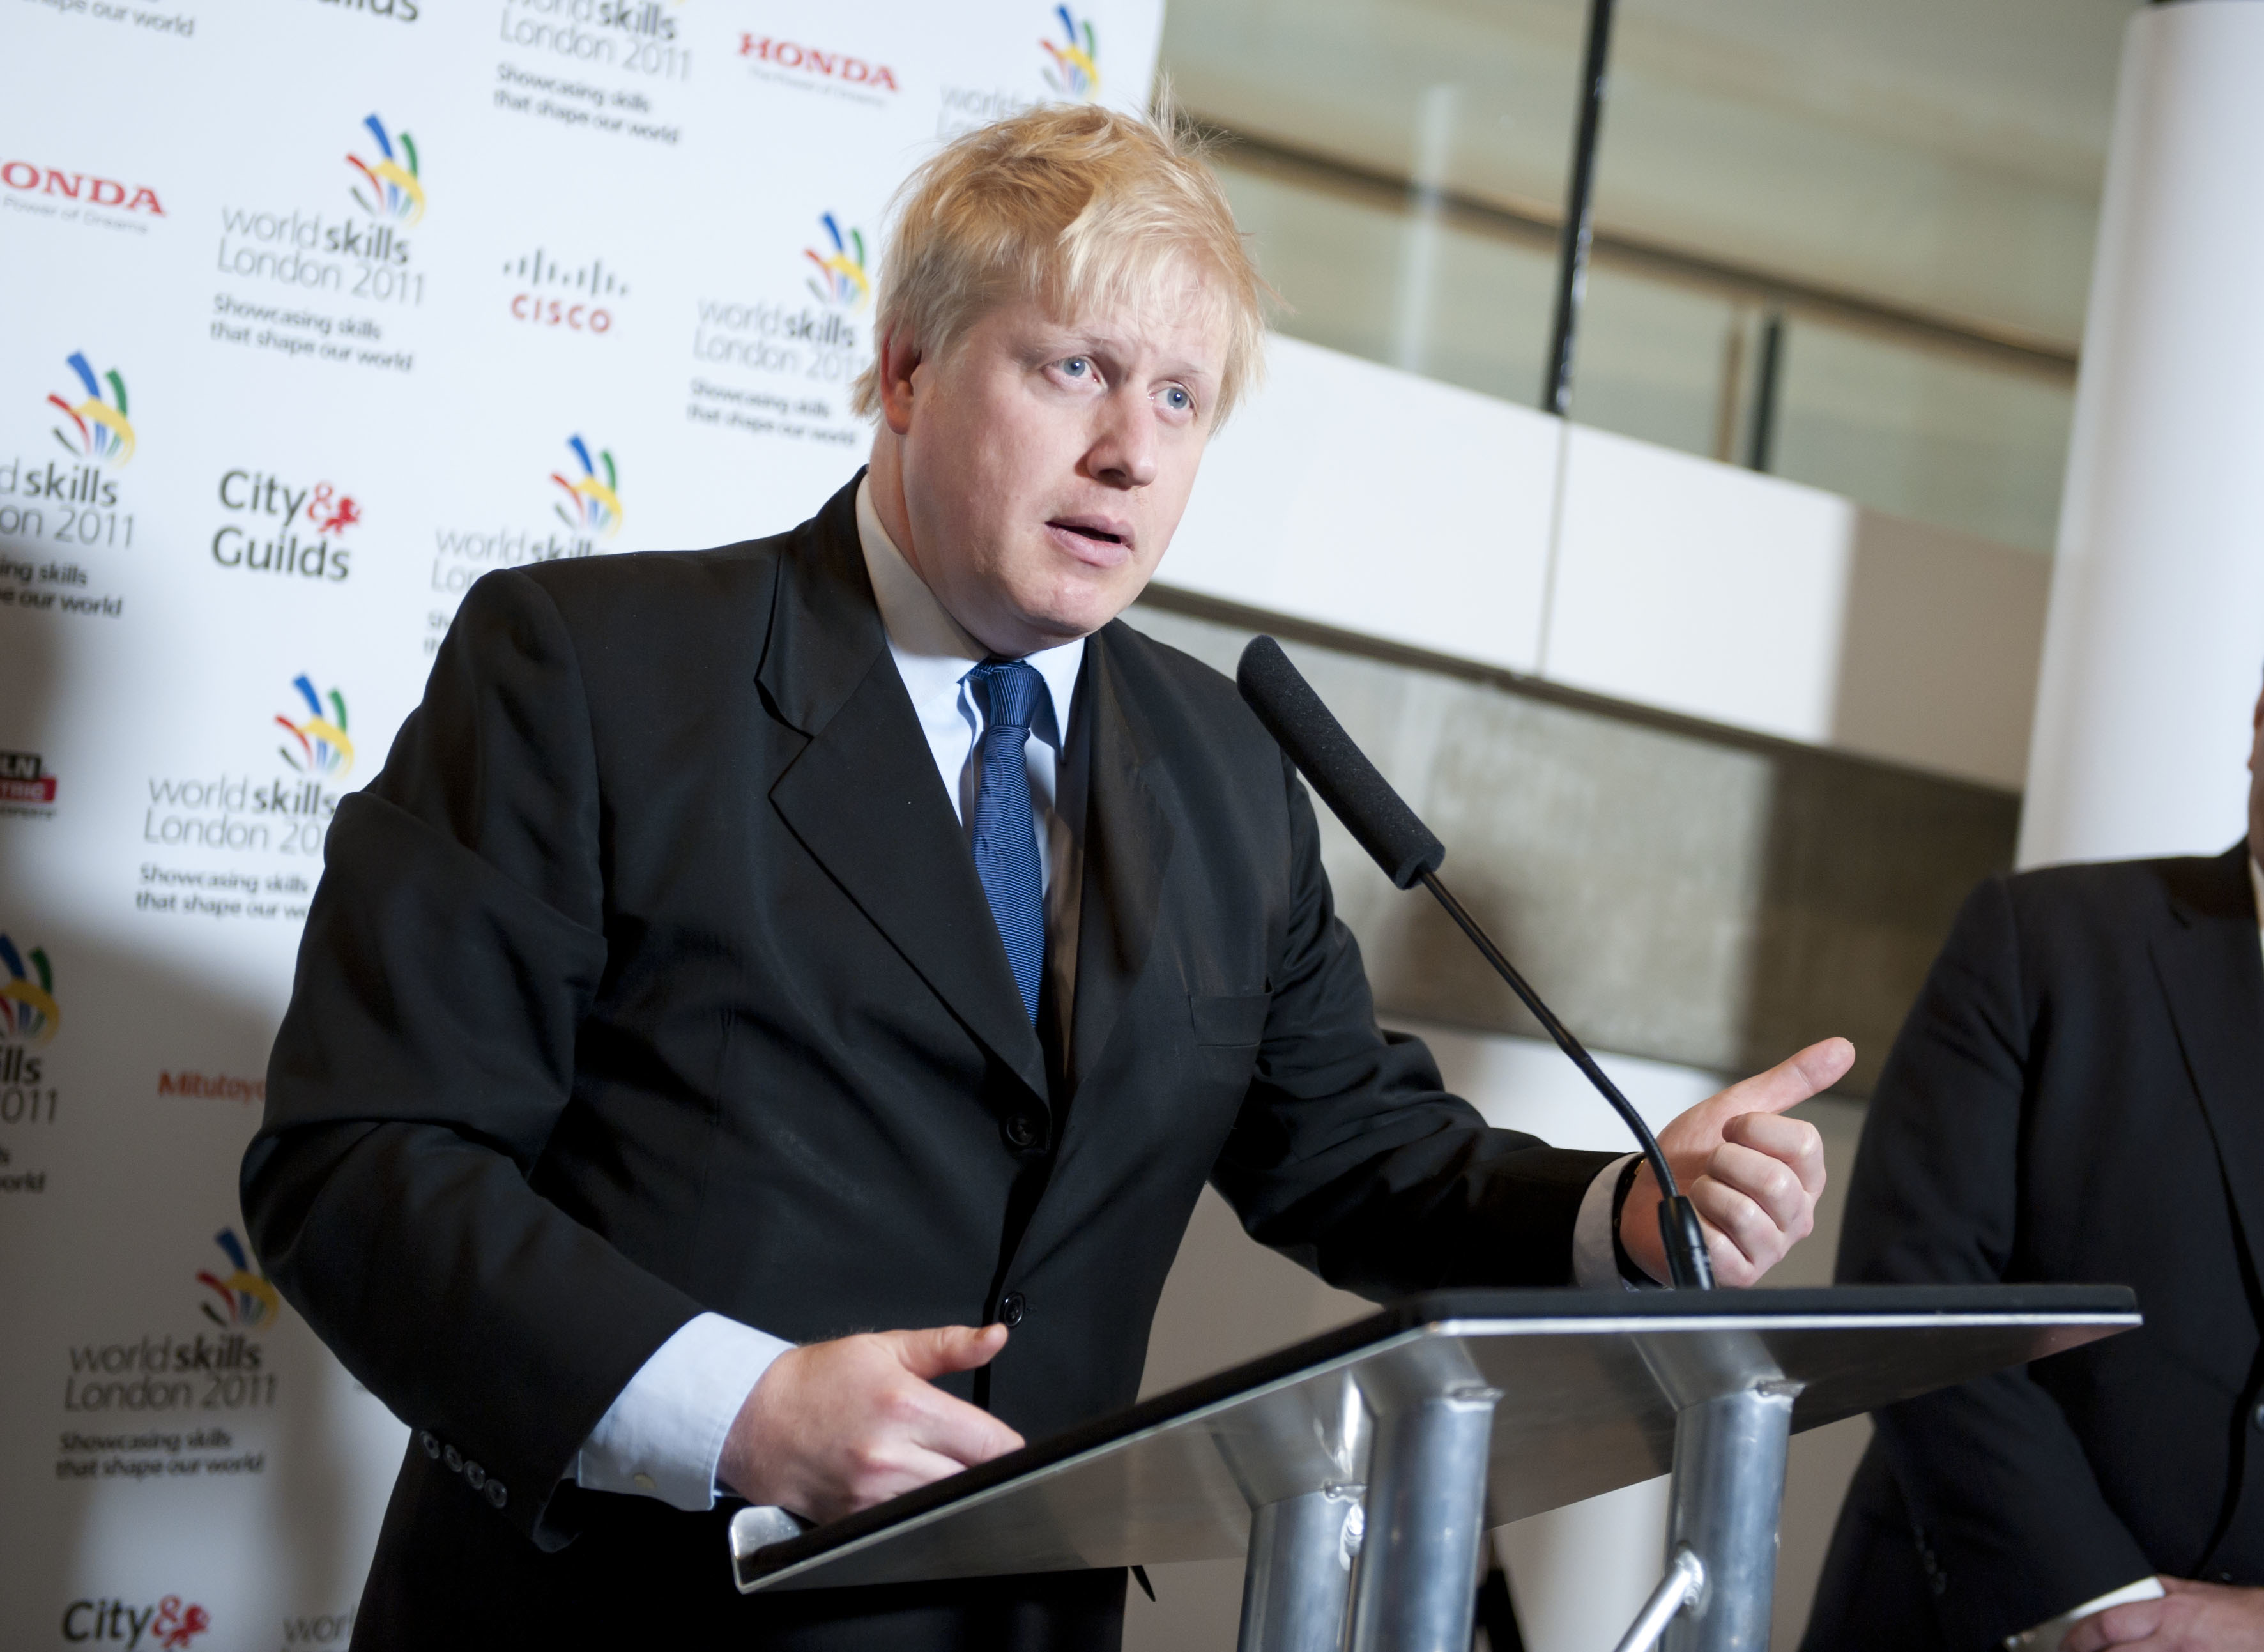 Mayor of London Boris Johnson speaking at the Launch of WorldSkills London 2011 � Have a Go, at City Hall in central London. The WorldSkills skills competition will take place at ExCeL London between October 5-8 2011.